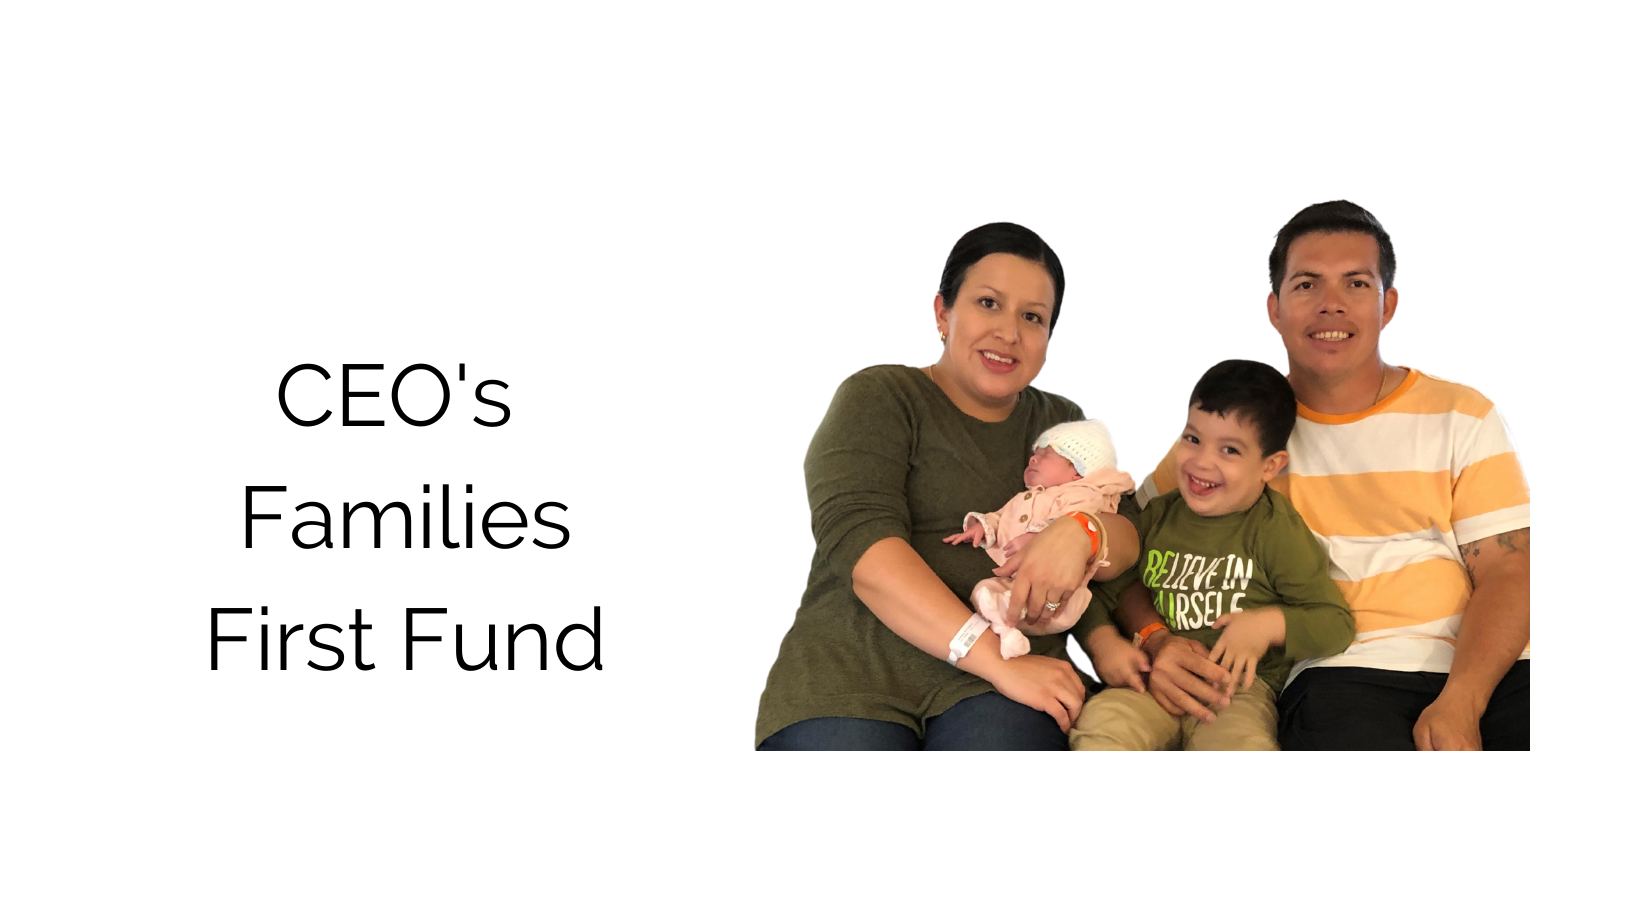 CEO's Families First Fund